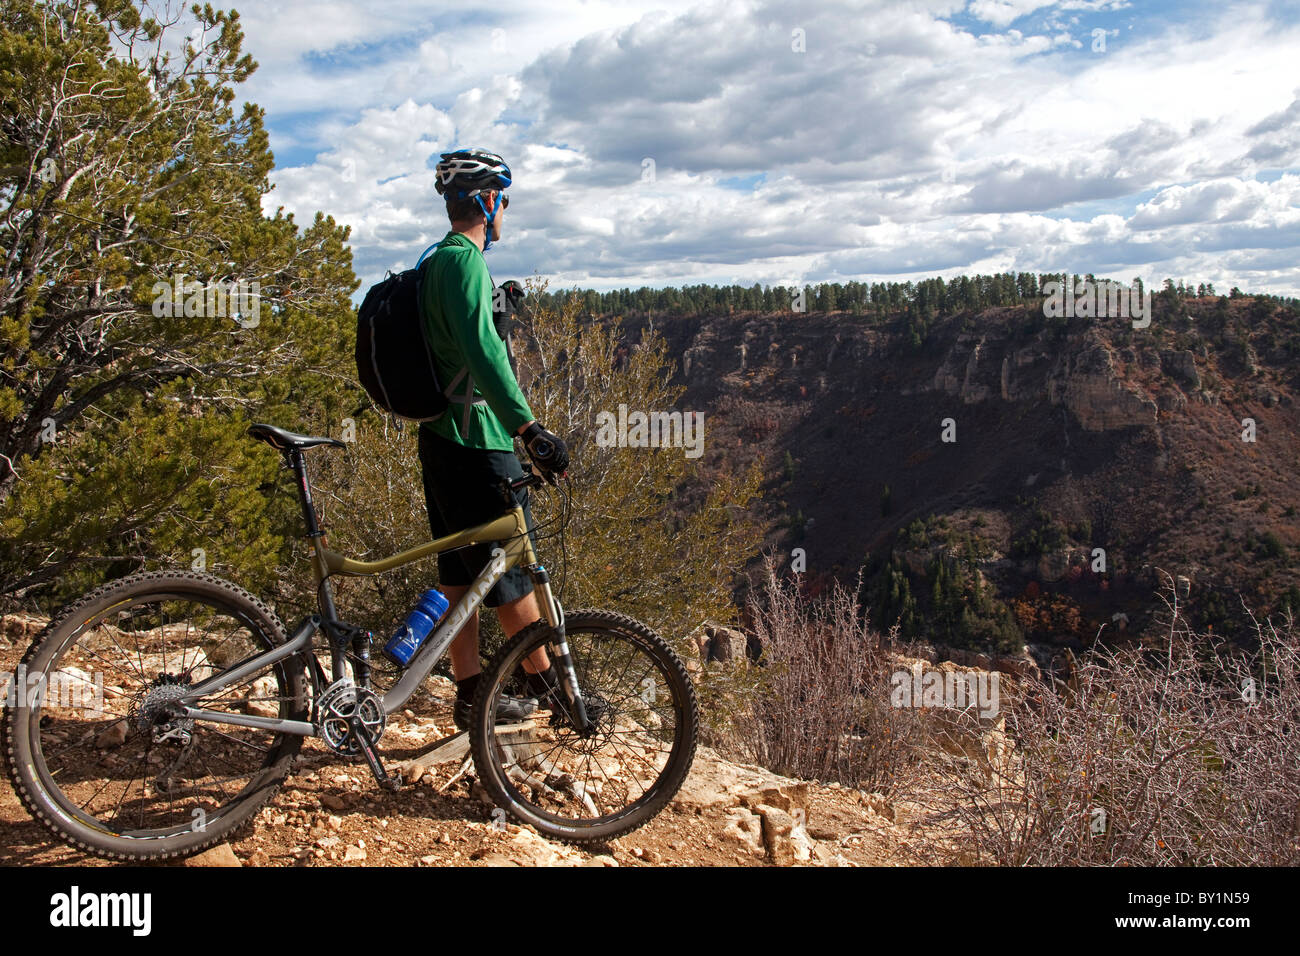 USA, Arizonia, Grand Canyon north rim, Kaibab National Forest.  The vast expanse of national park areas away from - Stock Image